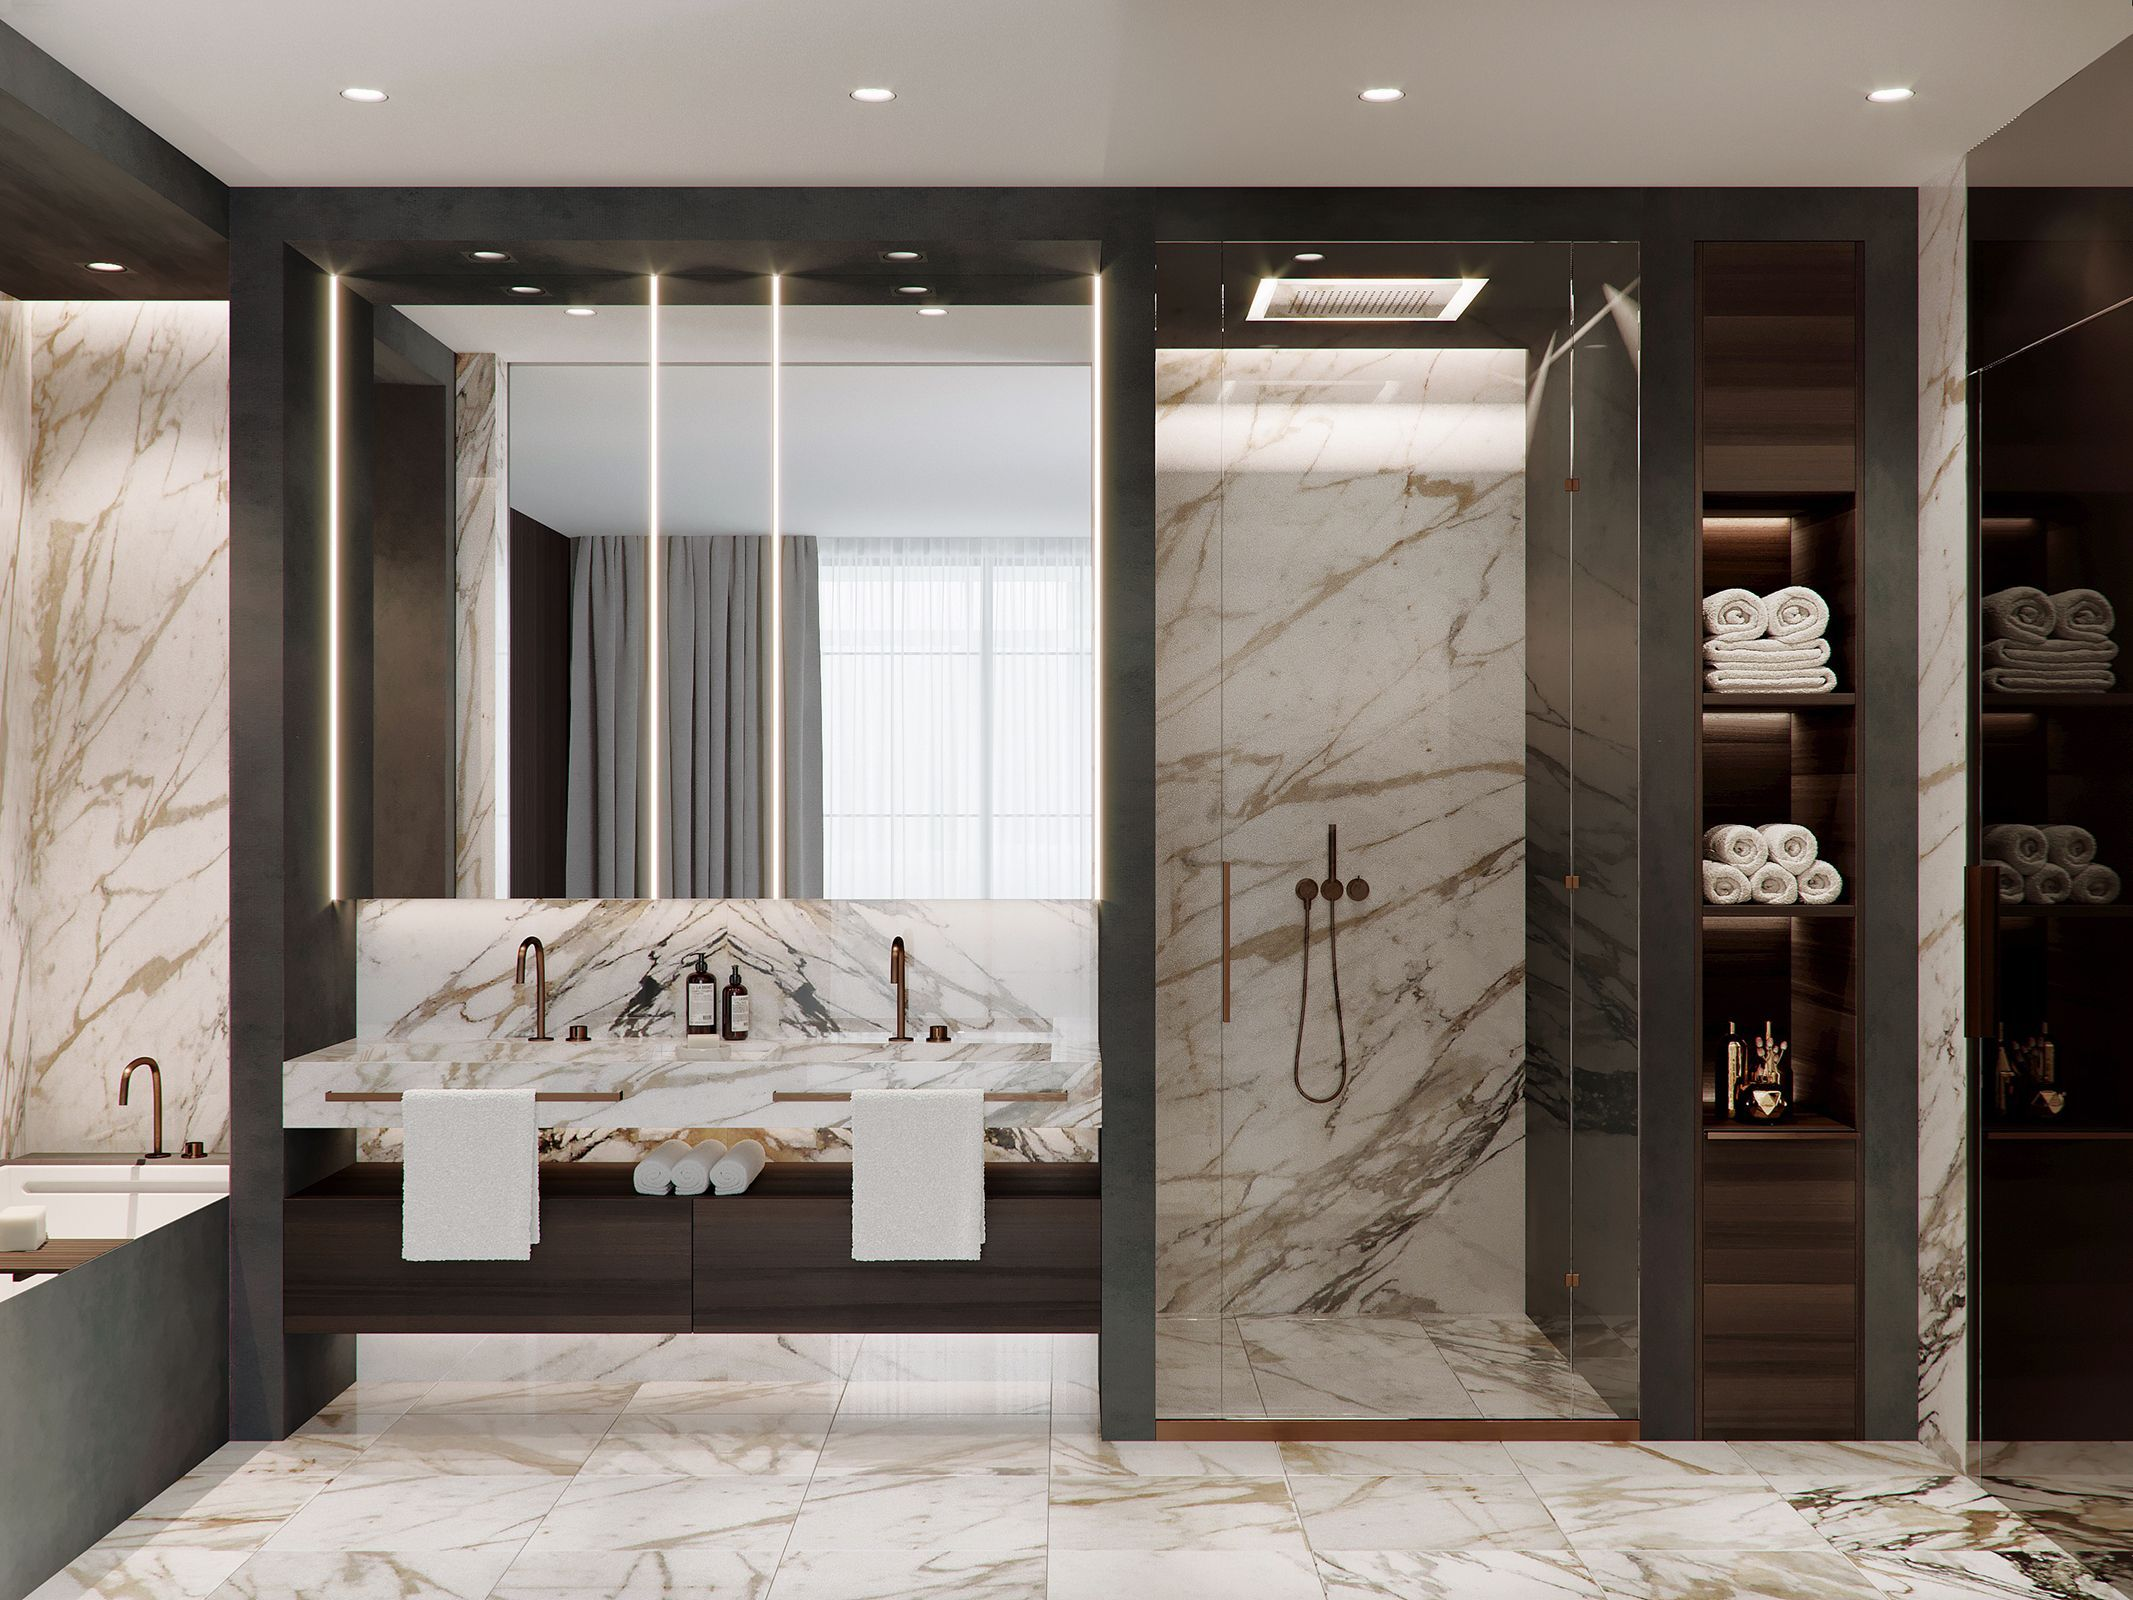 Come To See The Most Luxury Bathroom Inspirations Ever Check More At Maisonvalentina Net Salle De Bain Design Salle De Bain De Luxe Idee Salle De Bain